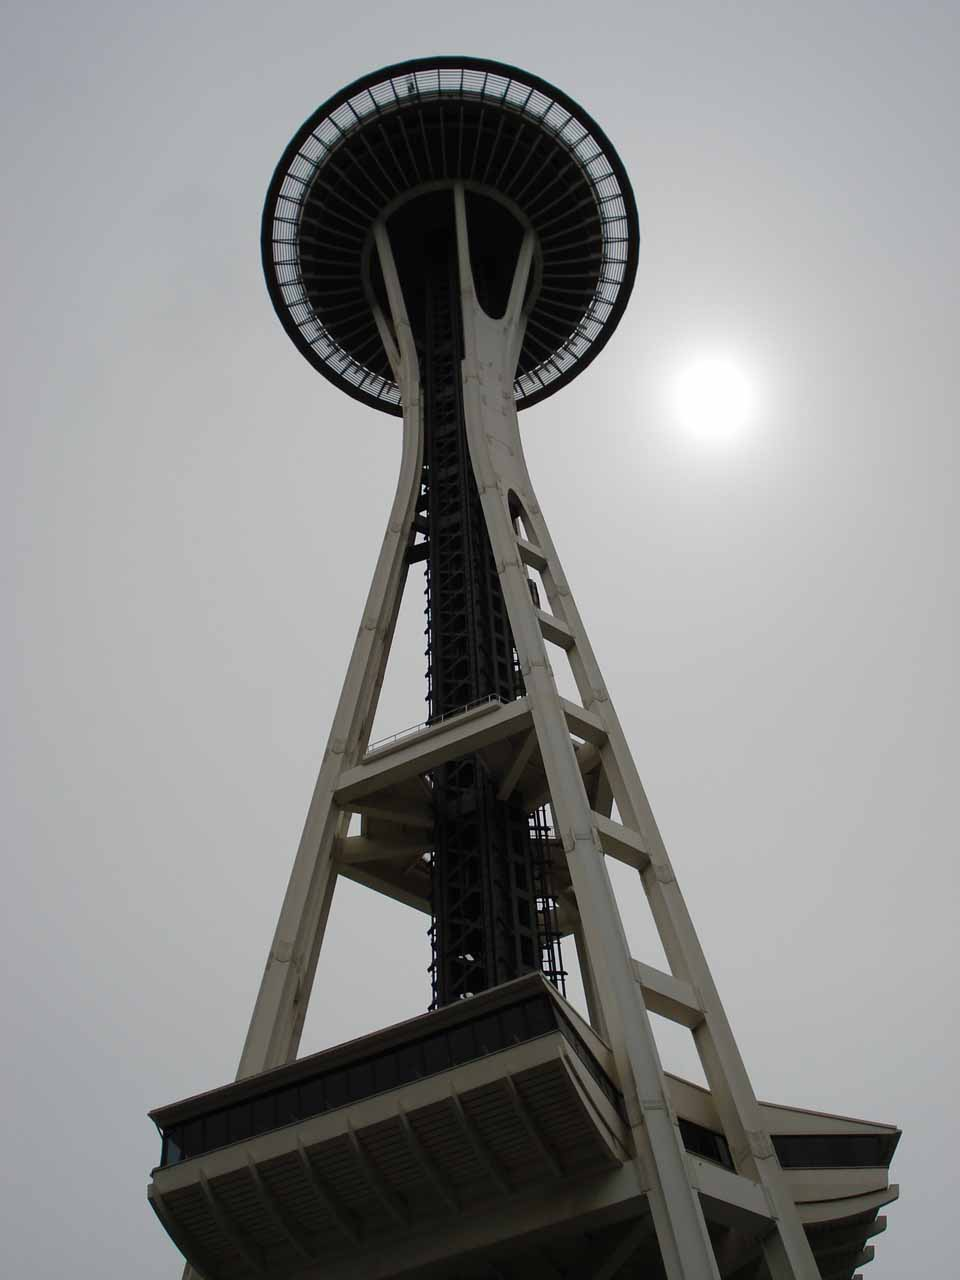 One of Seattle's most iconic landmarks is the Space Needle, which is pictured here from the bottom. I'll leave it up to you to decide if it's worth overpaying to go up